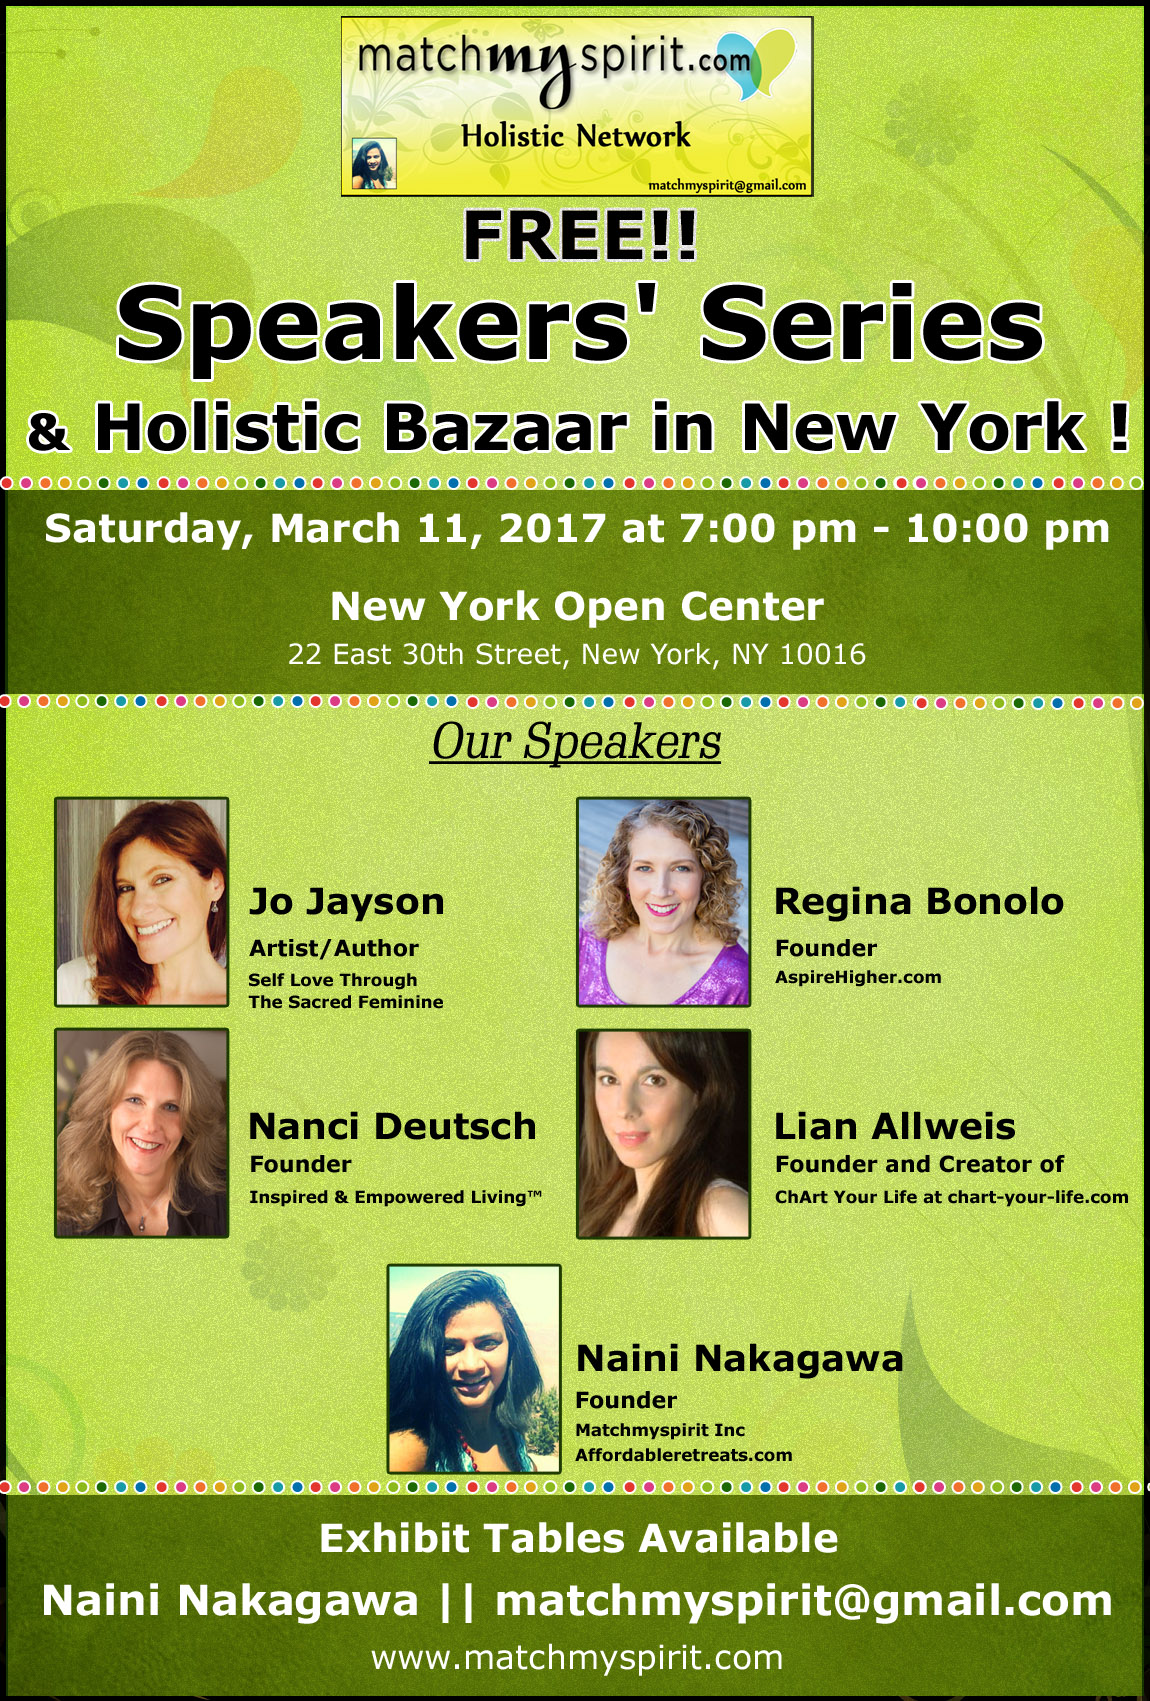 FREE!! Speakers Series  & Holistic Bazaar in New York